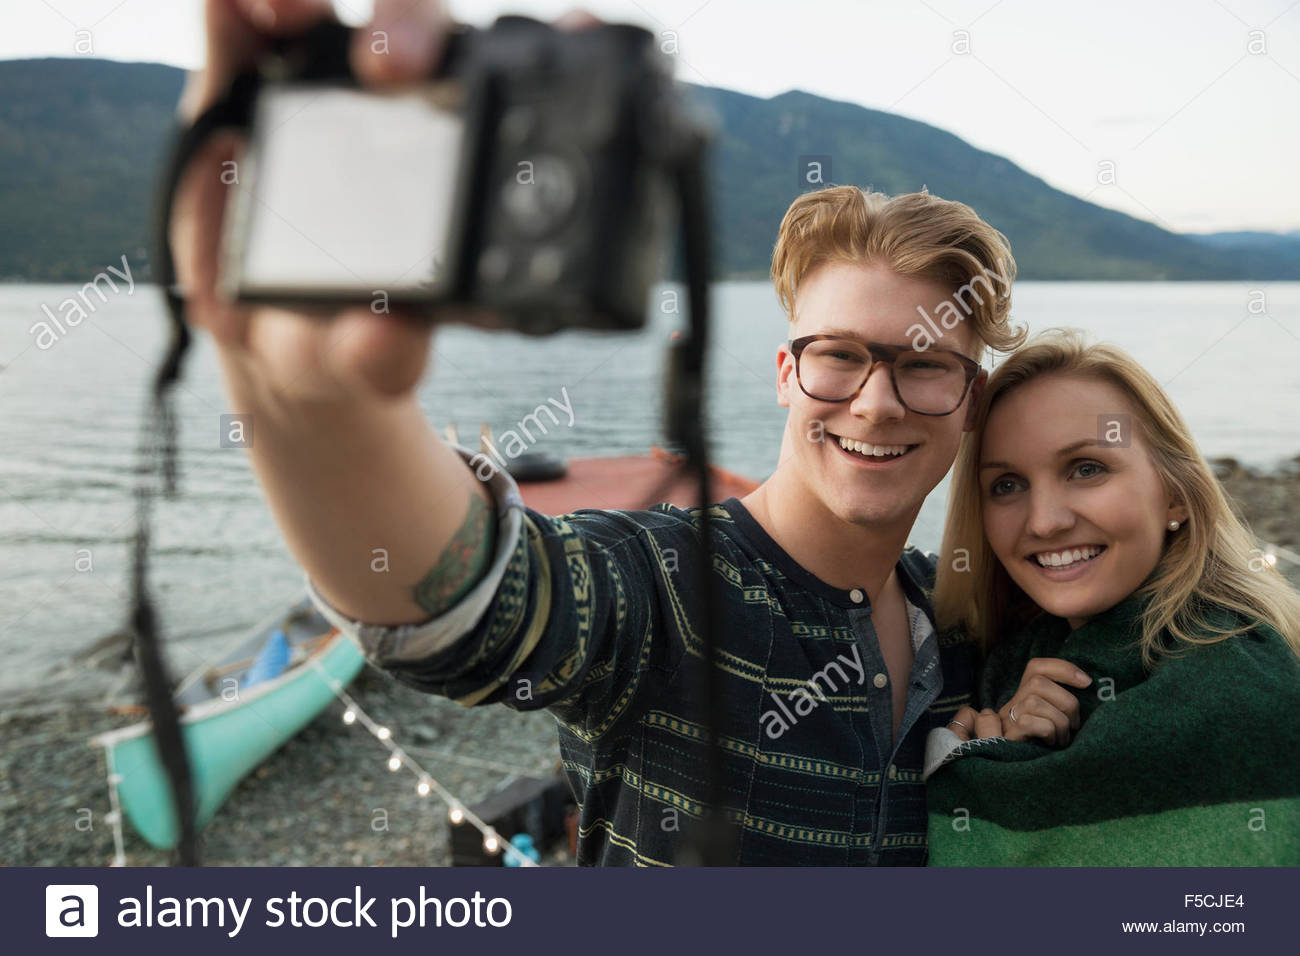 Smiling young woman wrapped in a blanket lakeside - Stock Image